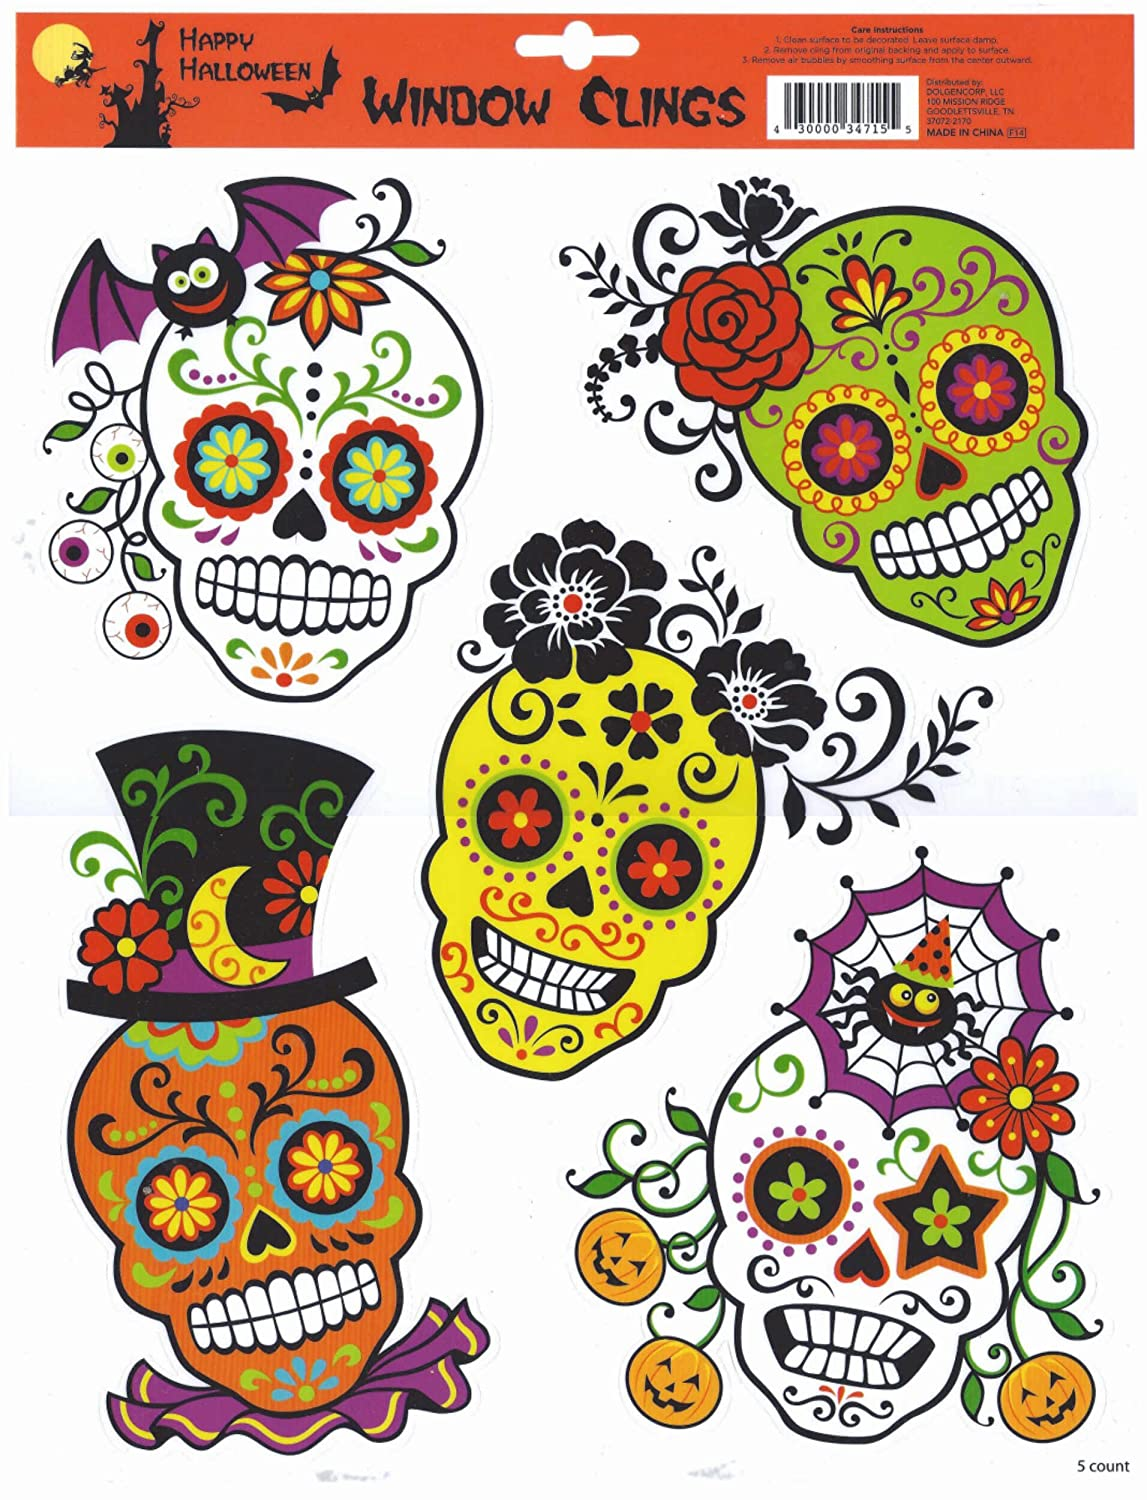 halloween window clings skulls cholo day of the dead designs - Halloween Window Clings